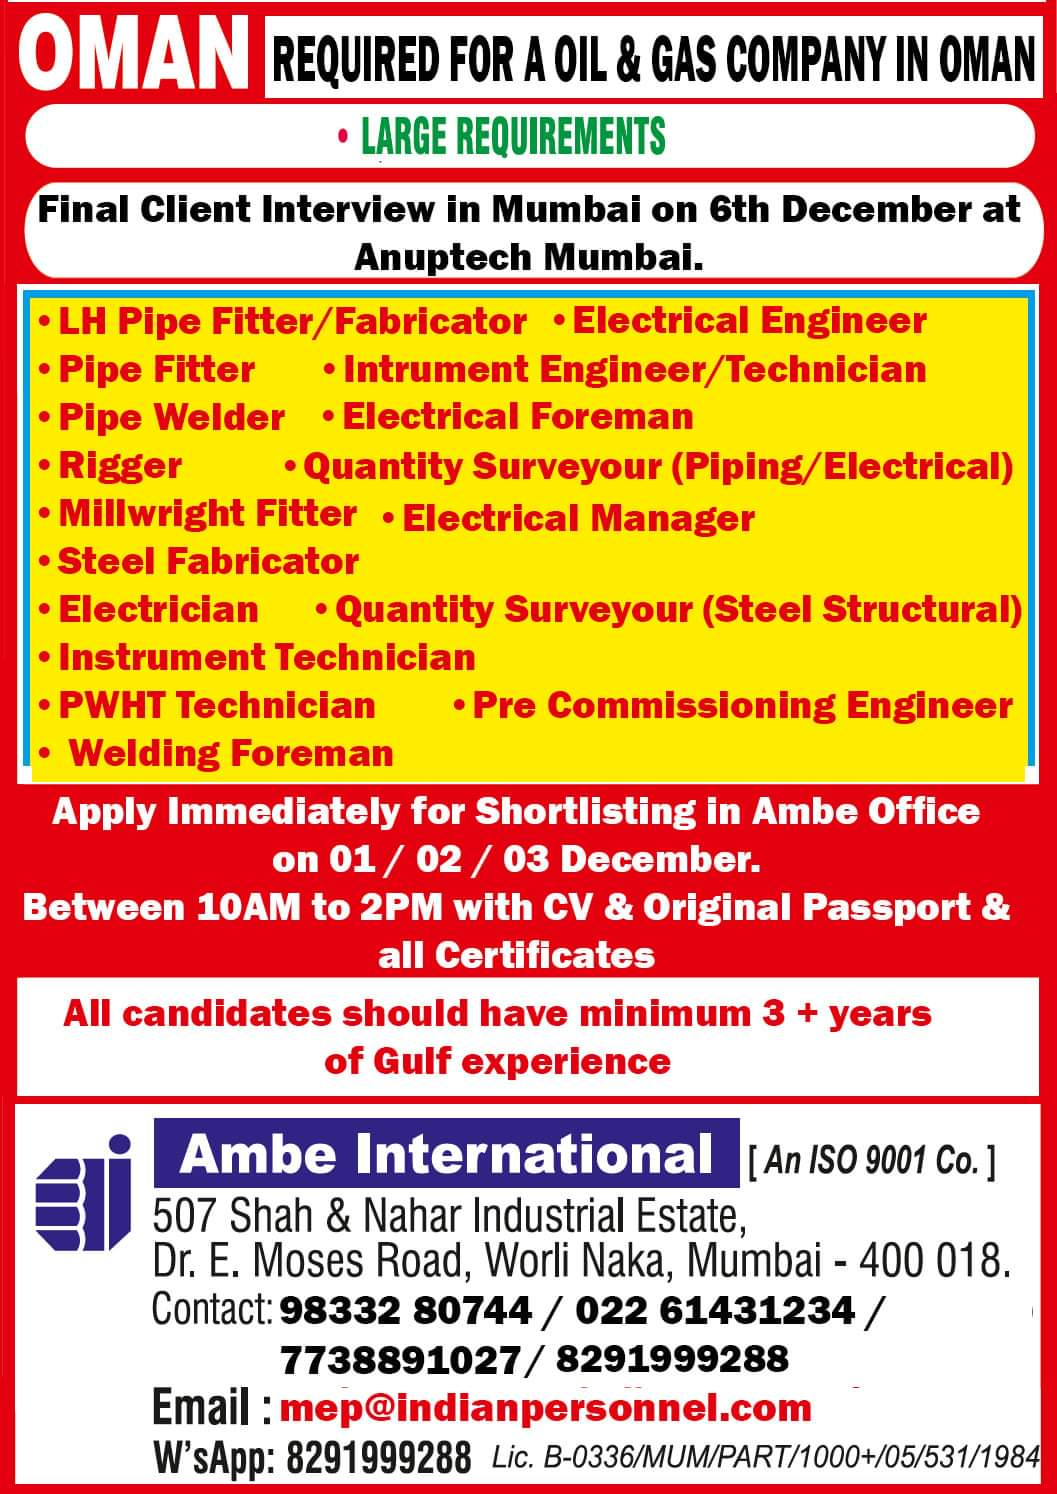 WALK-IN INTERVIEW AT MUMBAI FOR OIL & GAS COMPANY OMAN